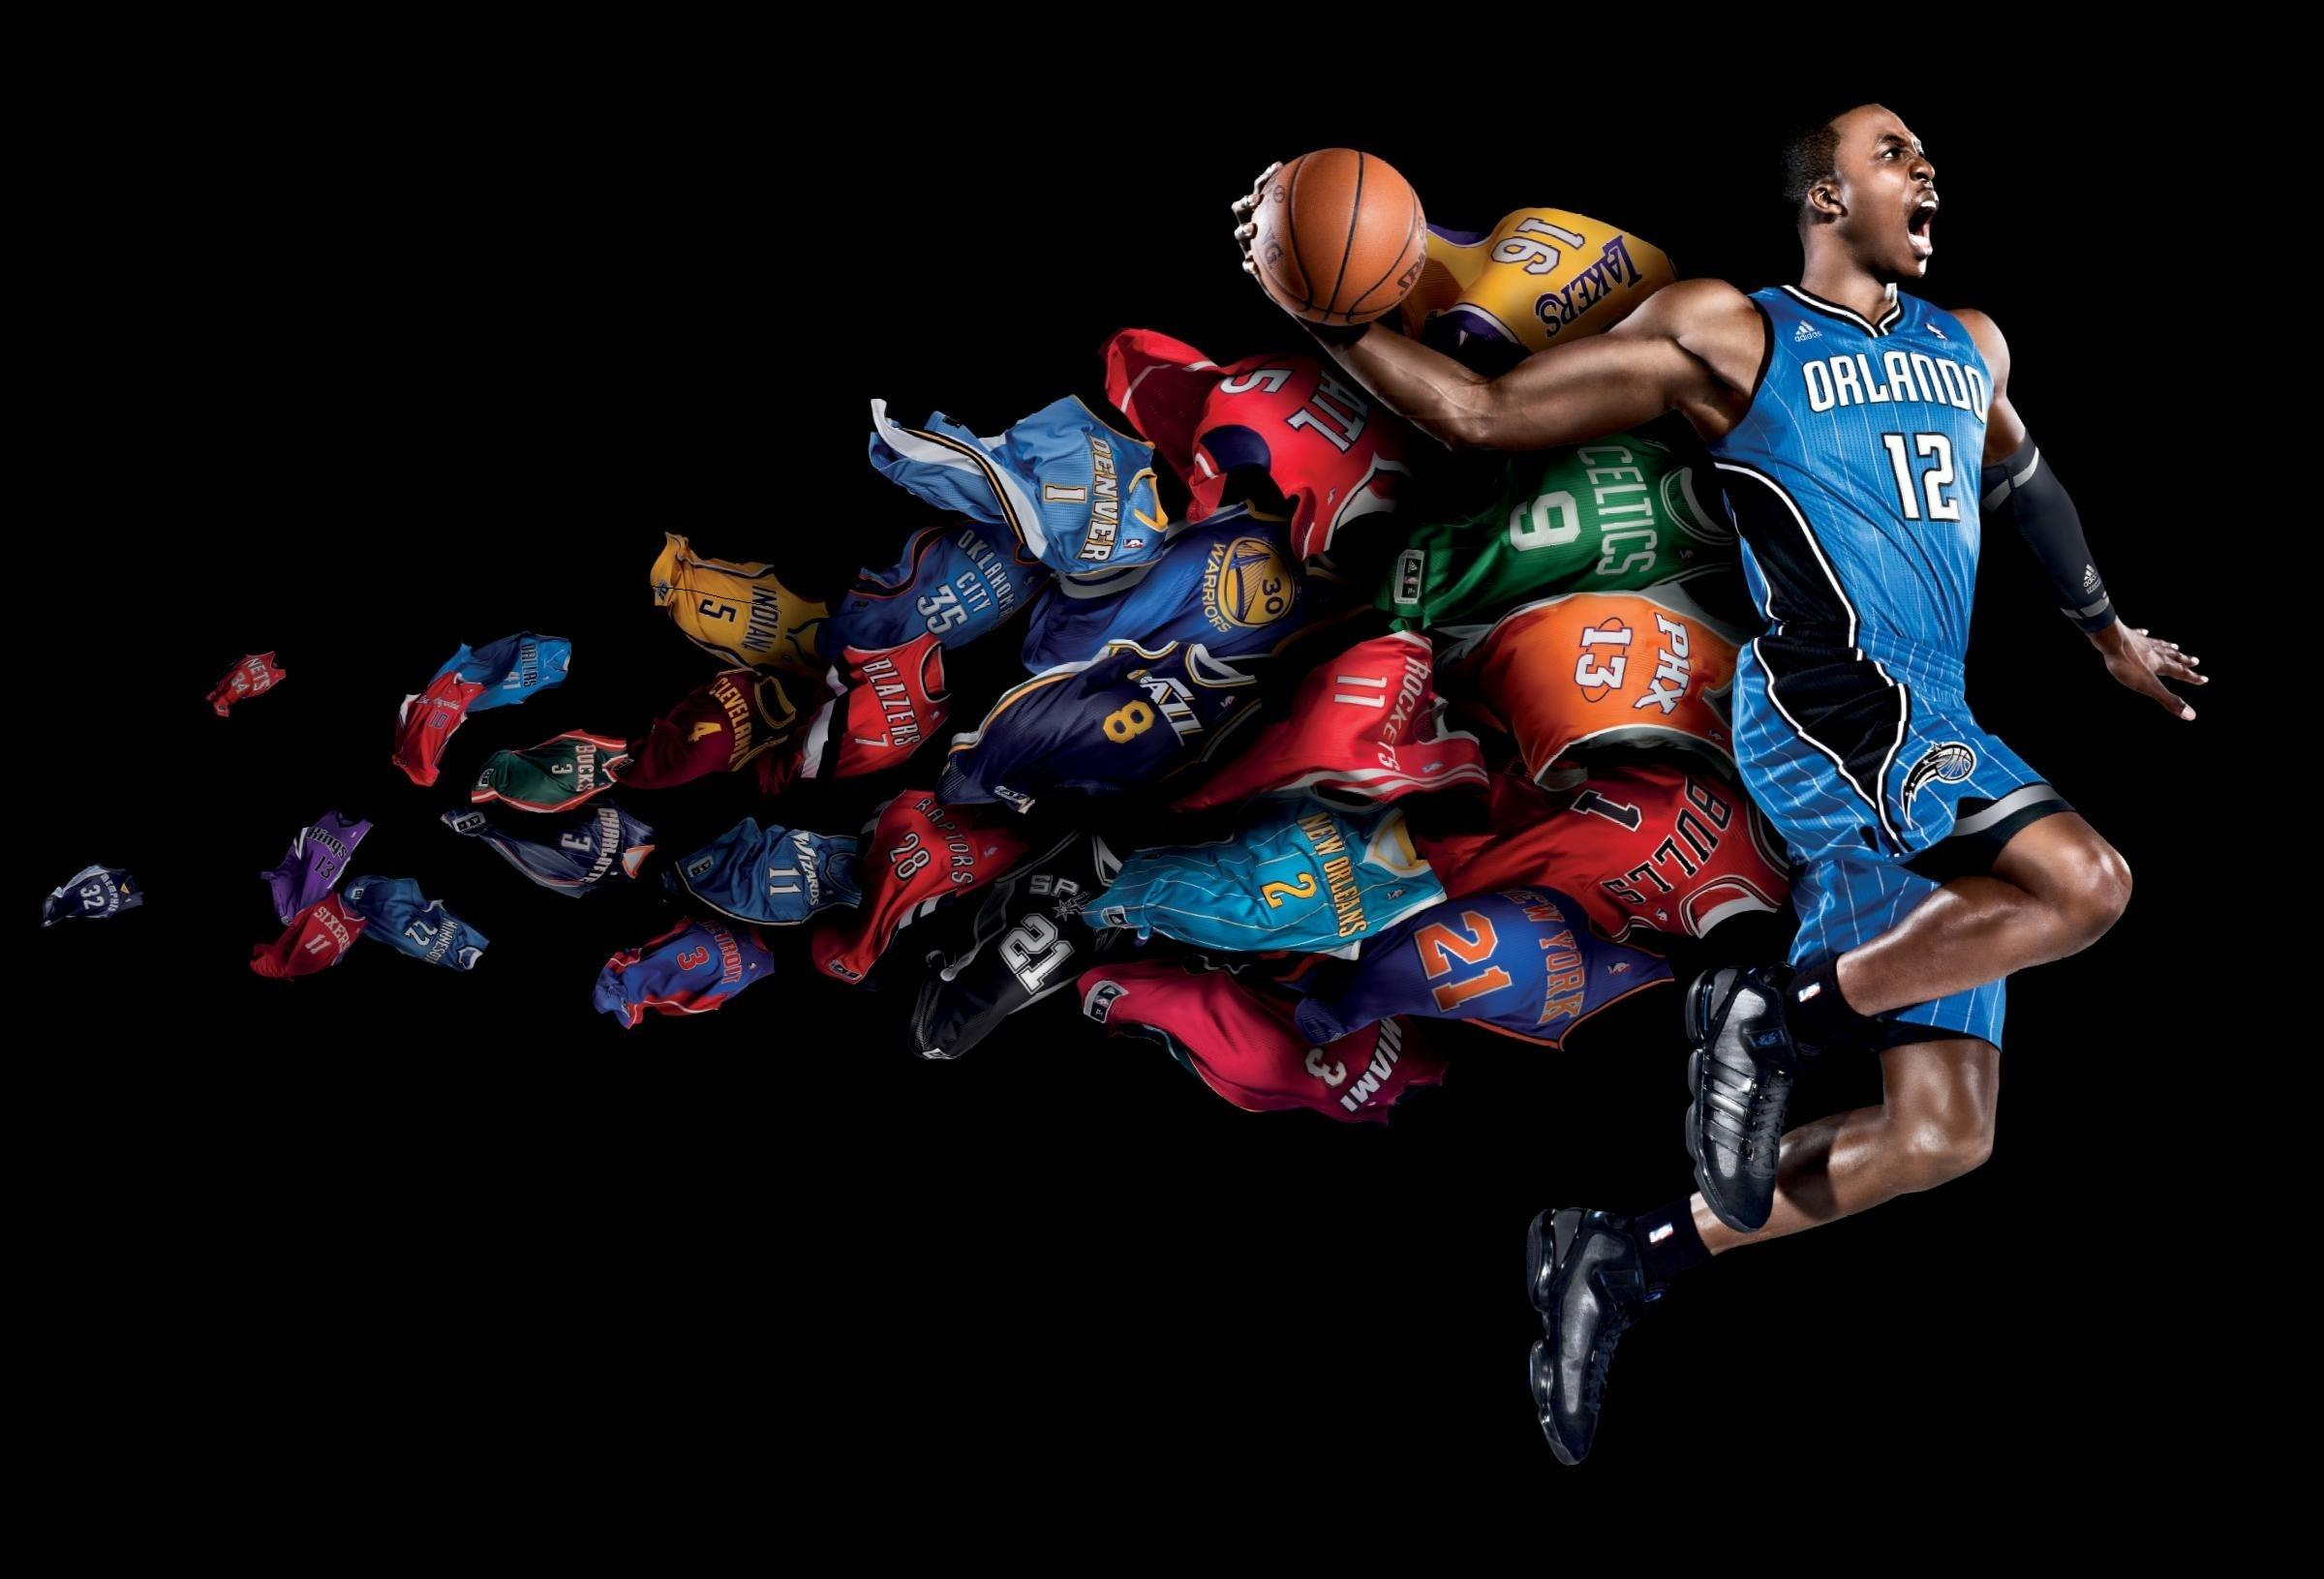 cool desktop backgrounds basketball hd wallpapers cool desktop images 2400x1631